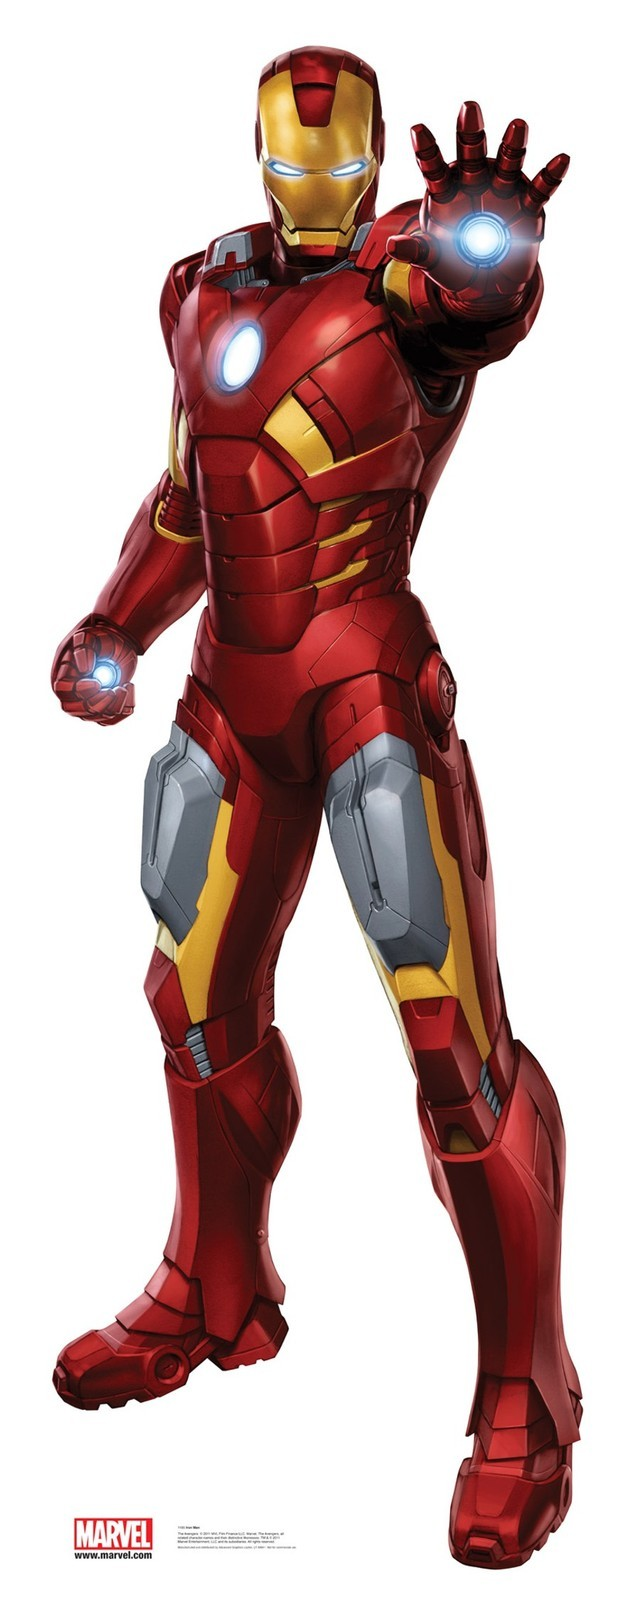 Iron Man Clipart Free | Clipart Panda - Free Clipart Images Iron Man Avengers Full Body